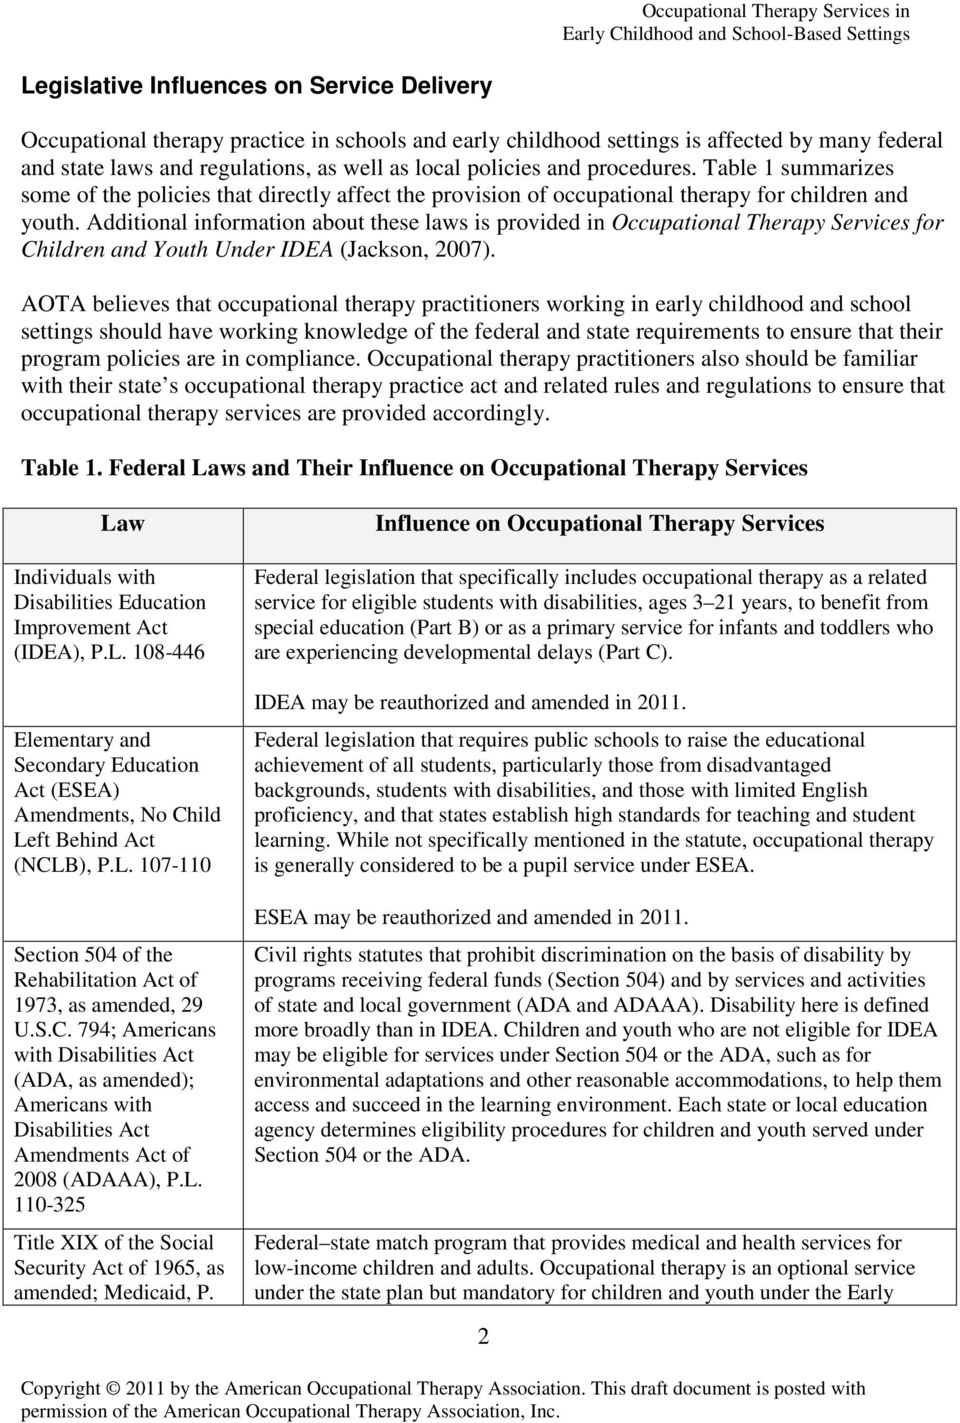 Additional information about these laws is provided in Occupational Therapy Services for Children and Youth Under IDEA (Jackson, 2007).